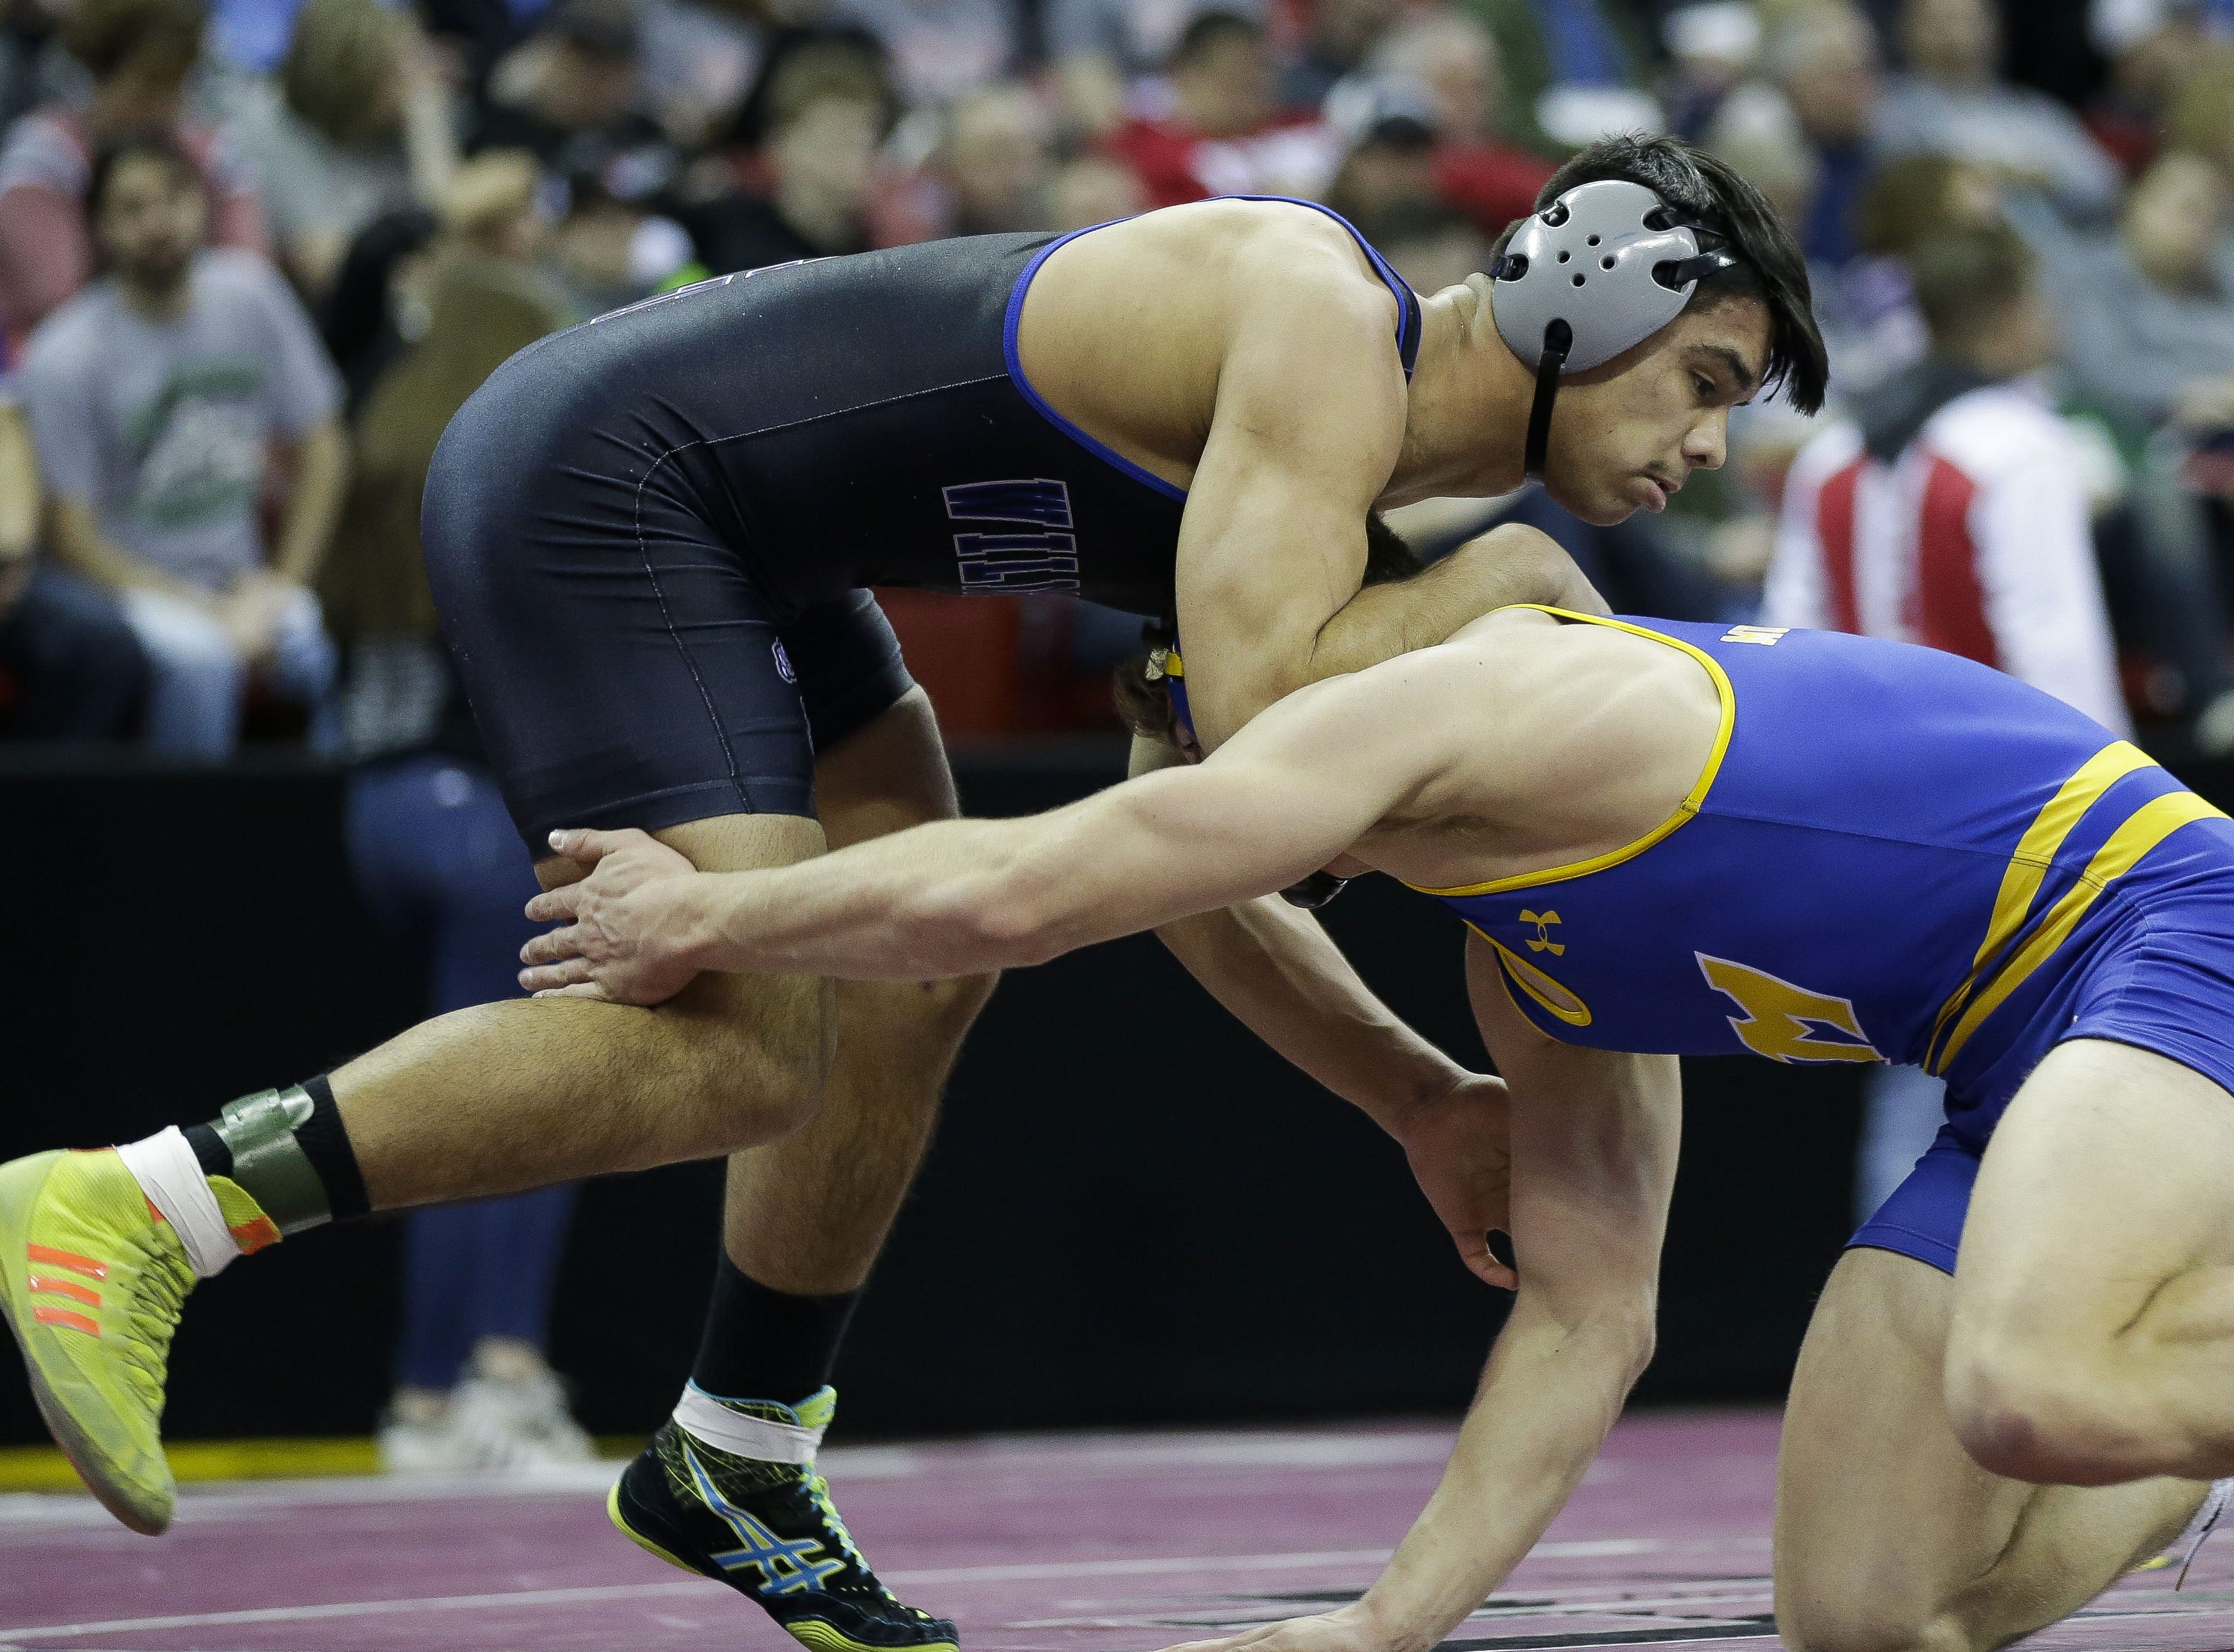 Oshkosh West's Edgar Heredia wrestles against Mukwonago's Aaron Schmitz in a Division 1 170-pound preliminary match during the WIAA state wrestling tournament on Thursday, February 21, 2019, at the Kohl Center in Madison, Wis. Tork Mason/USA TODAY NETWORK-Wisconsin